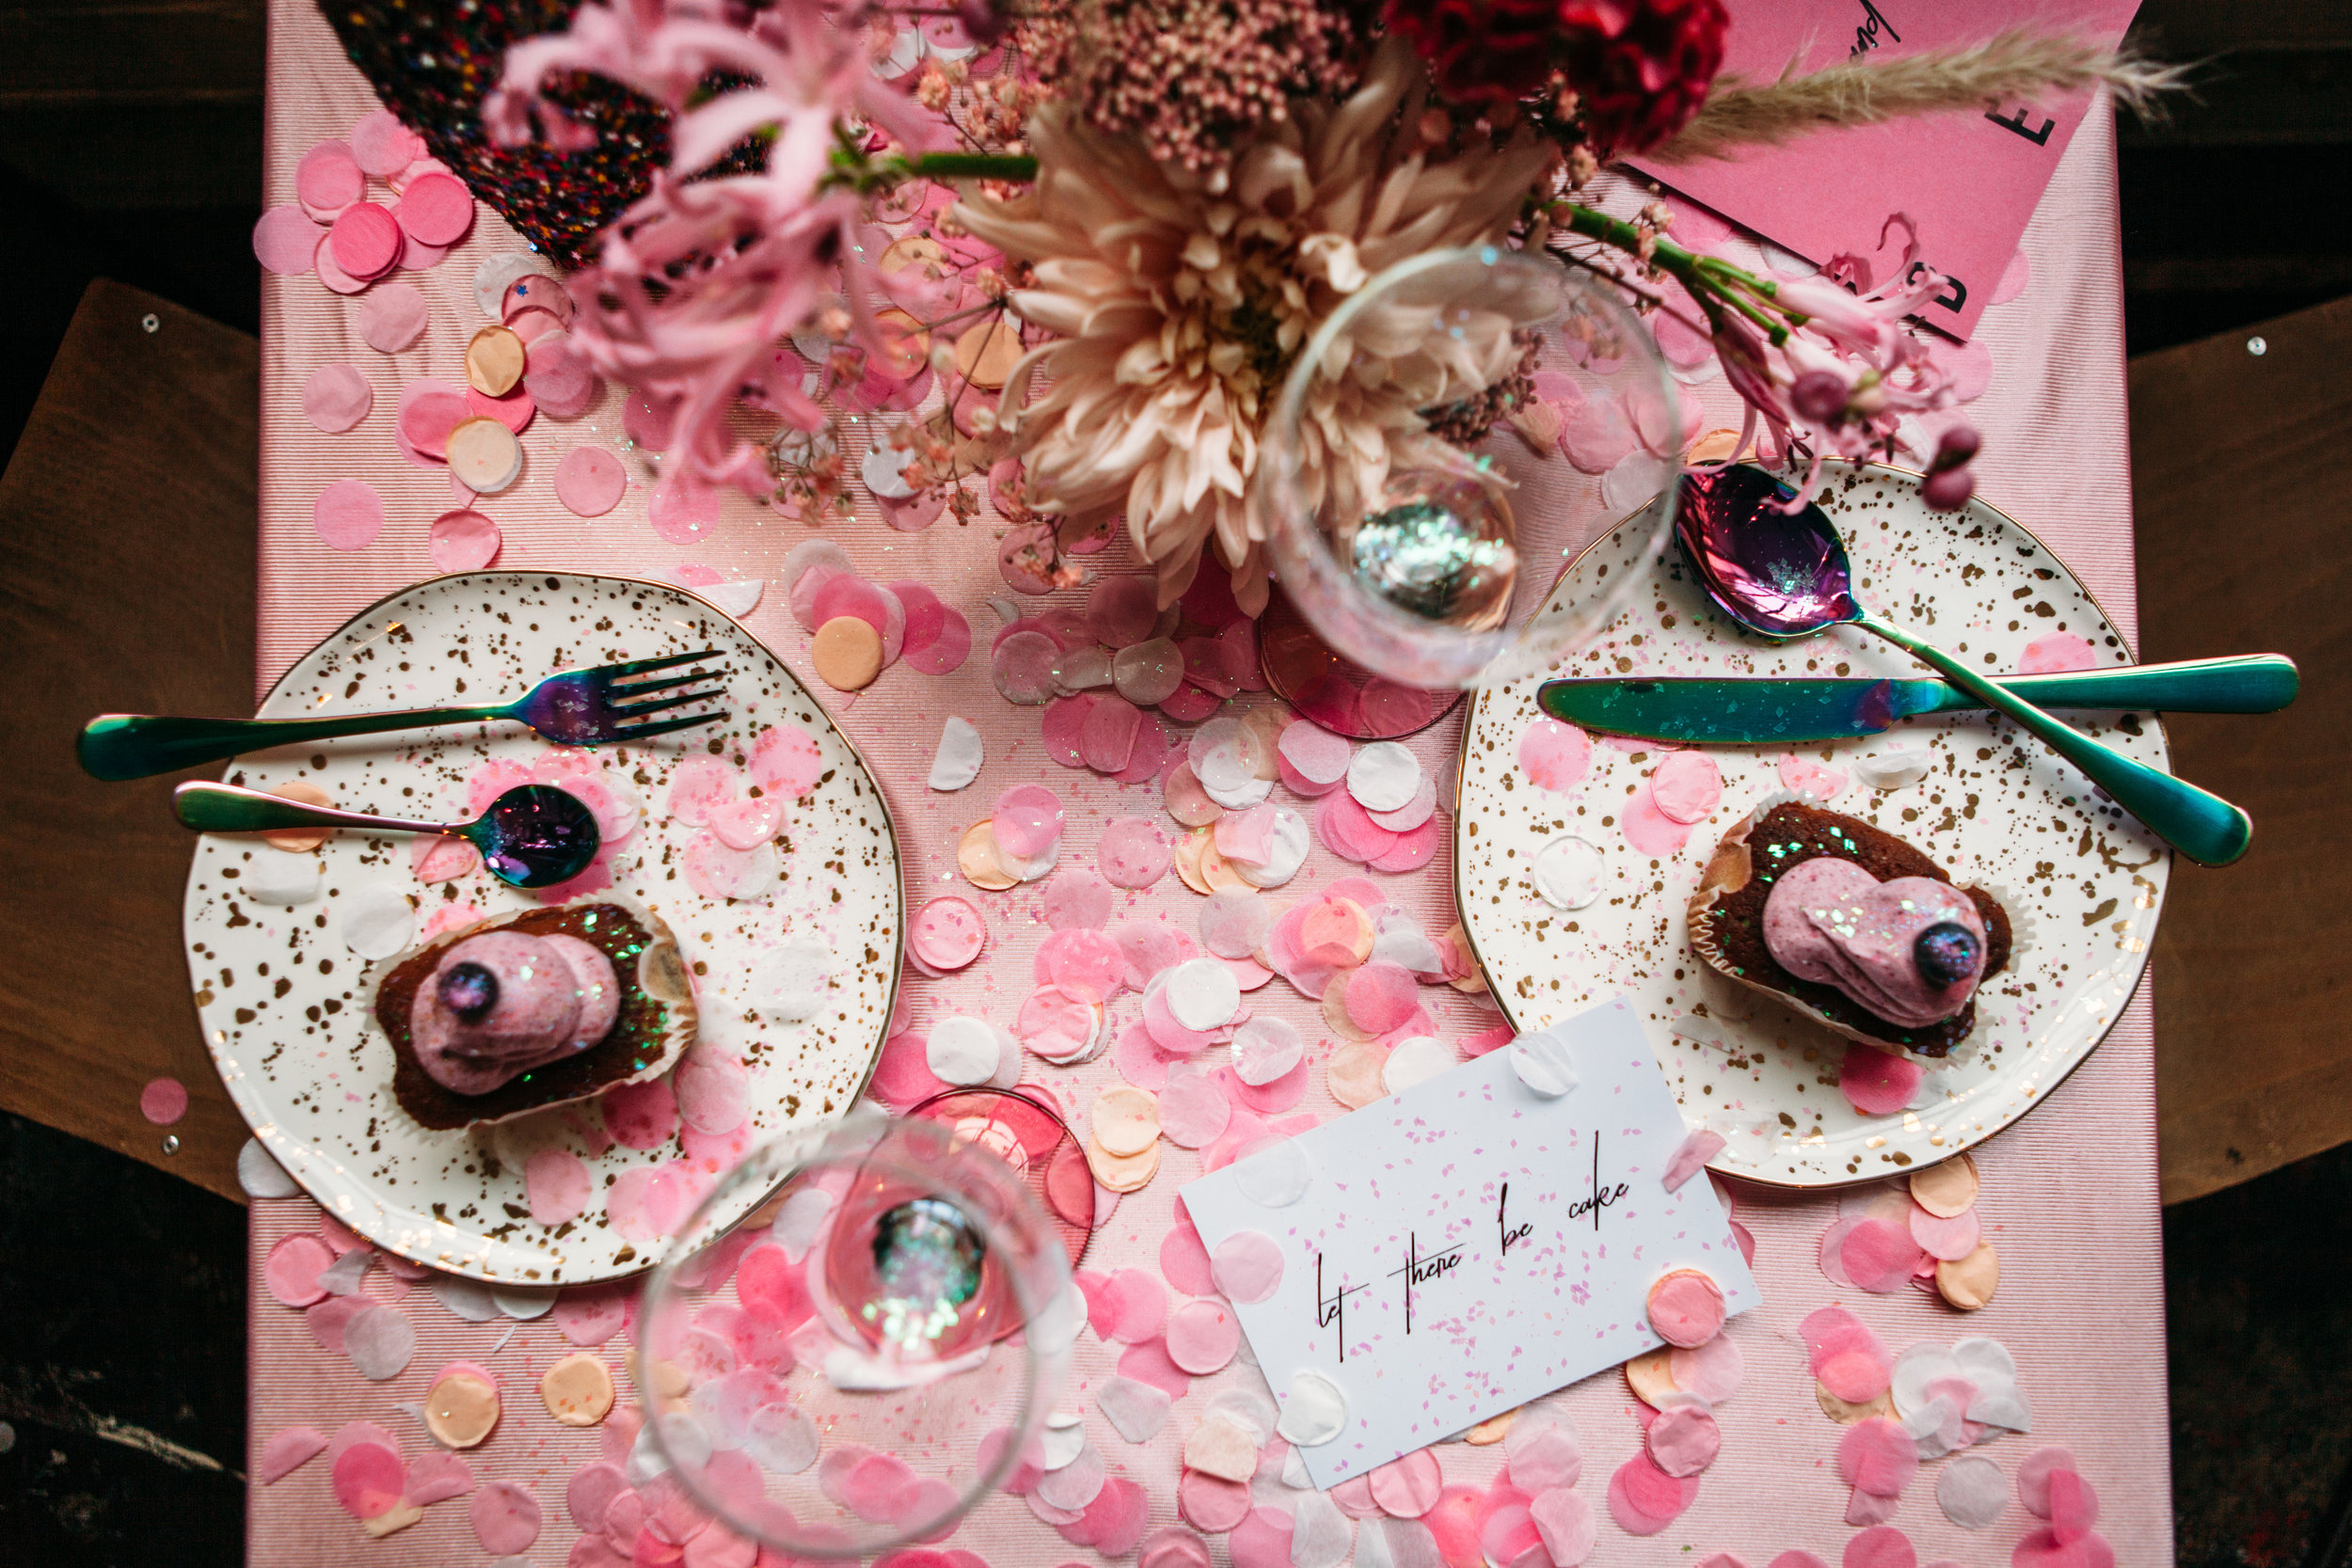 Grit and Glam Pink Shoreditch Elopement 00019.jpg